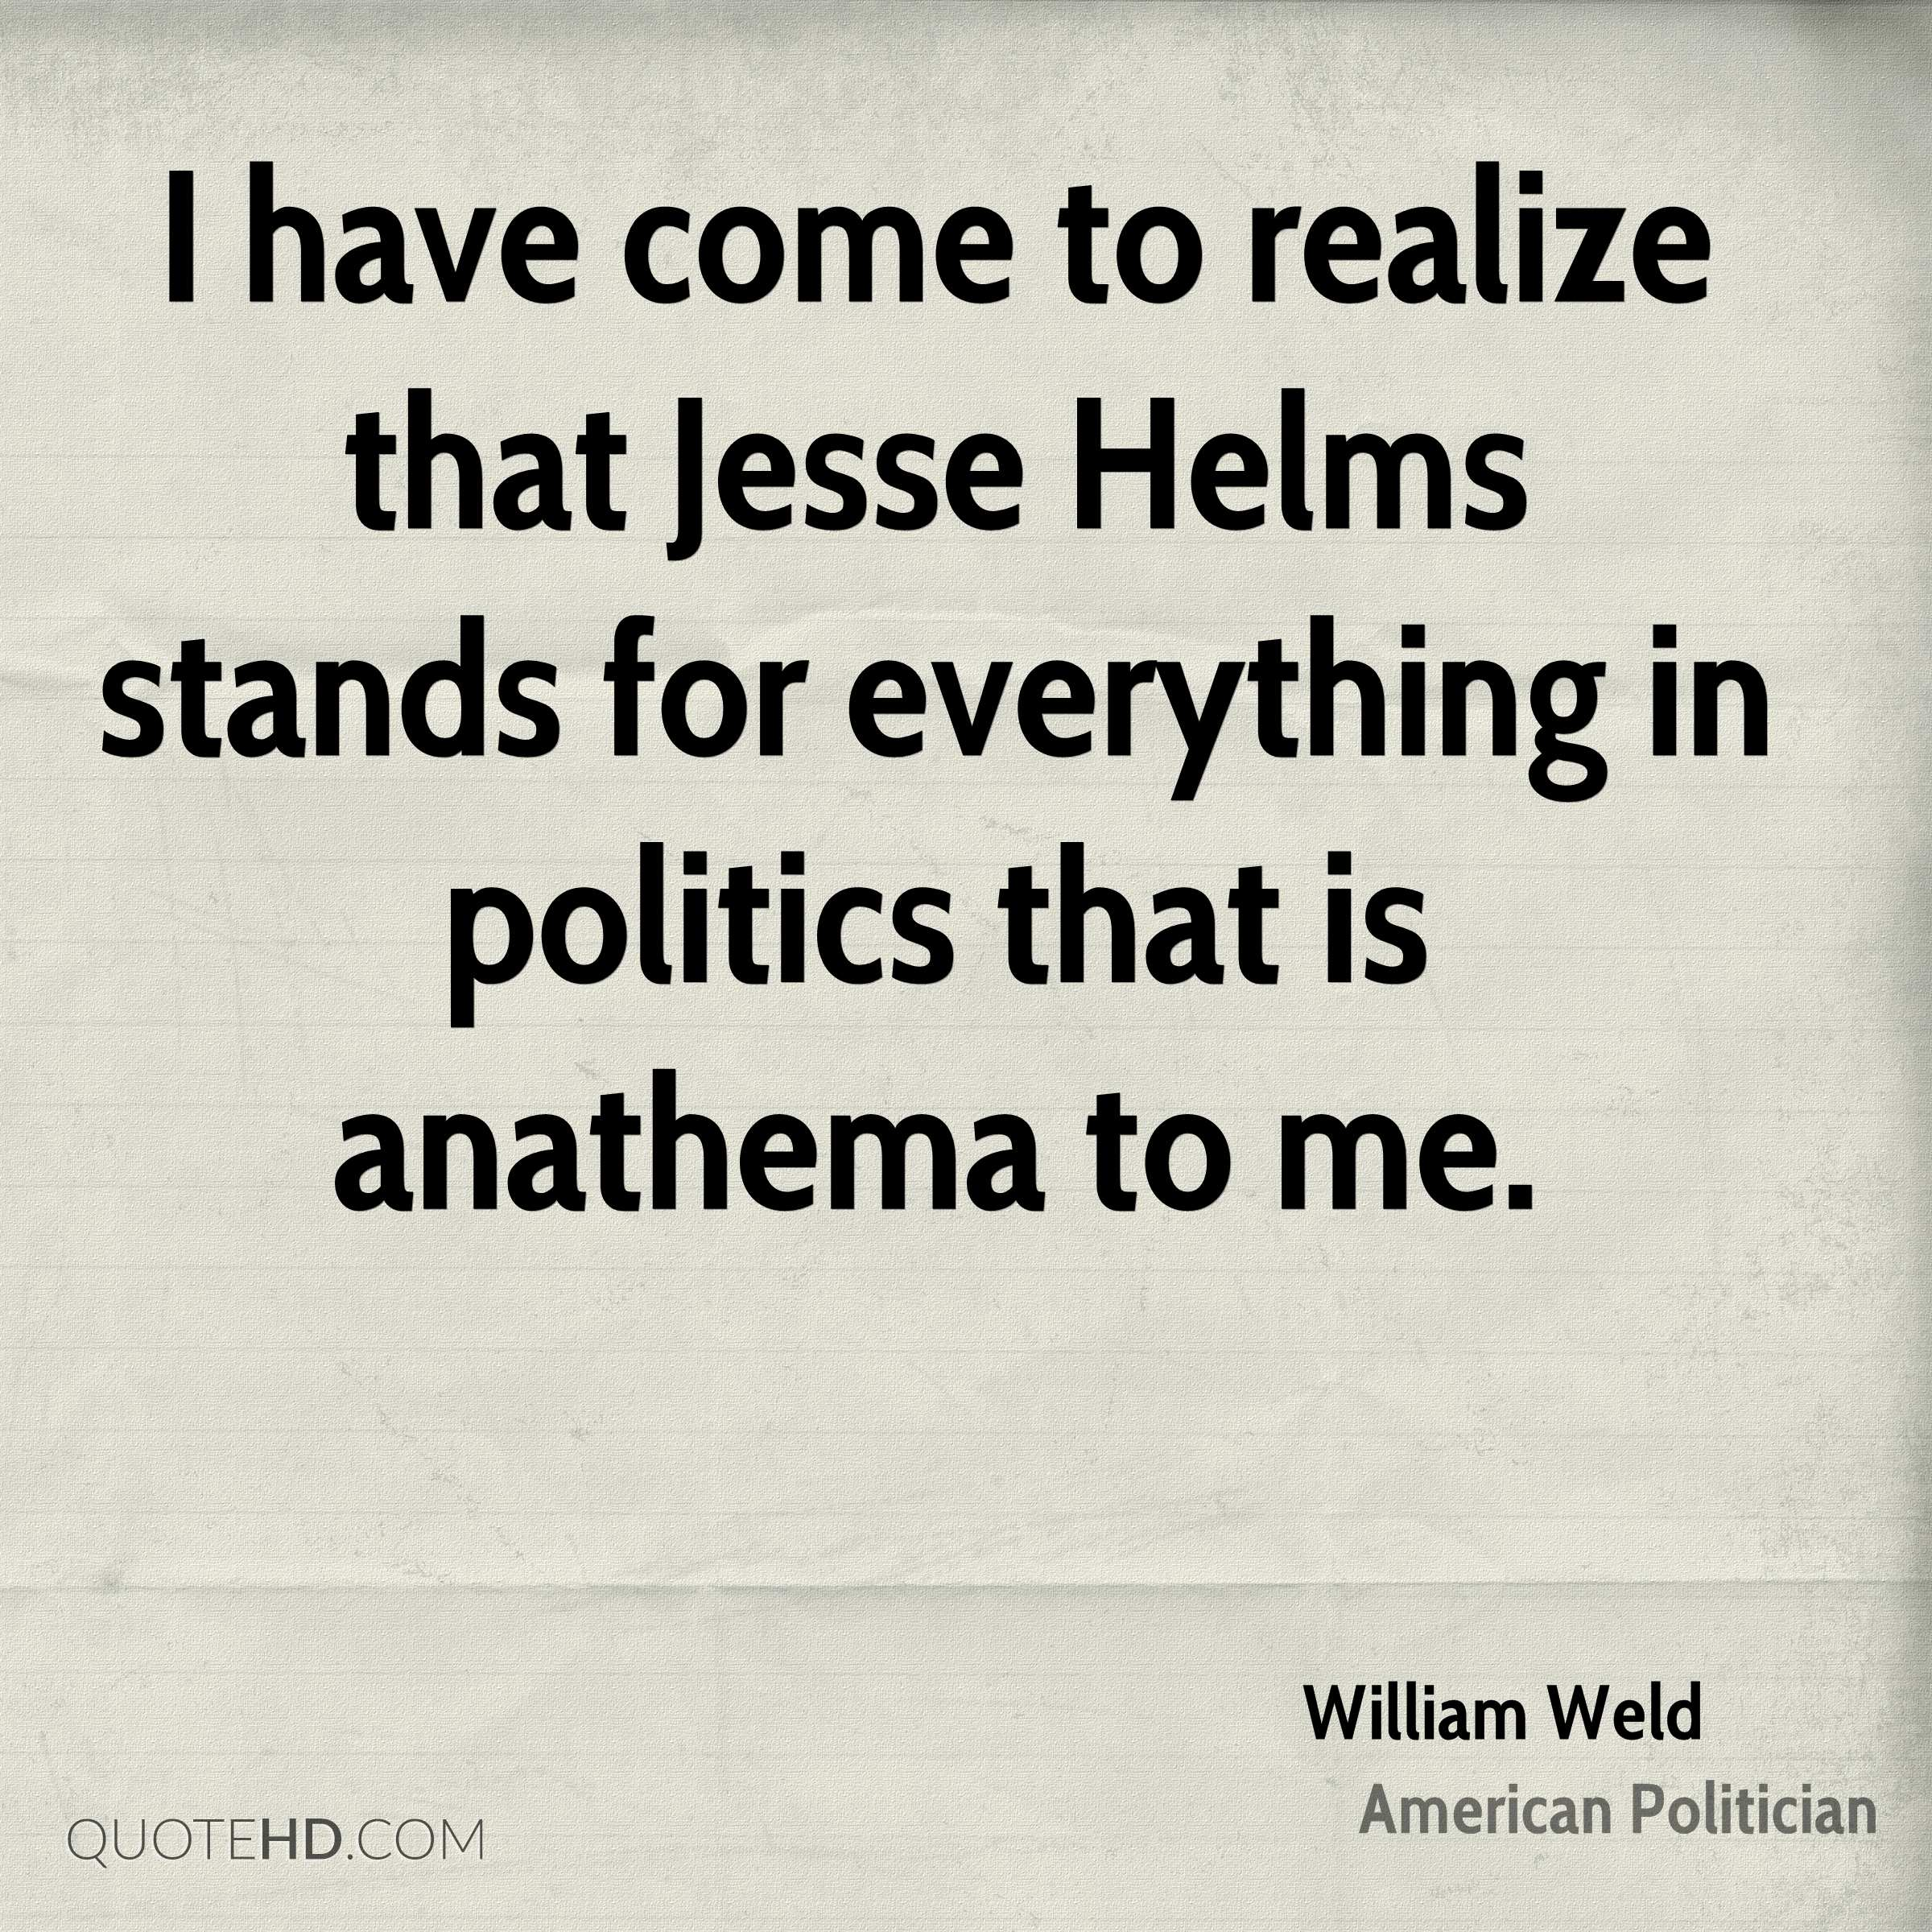 I have come to realize that Jesse Helms stands for everything in politics that is anathema to me.